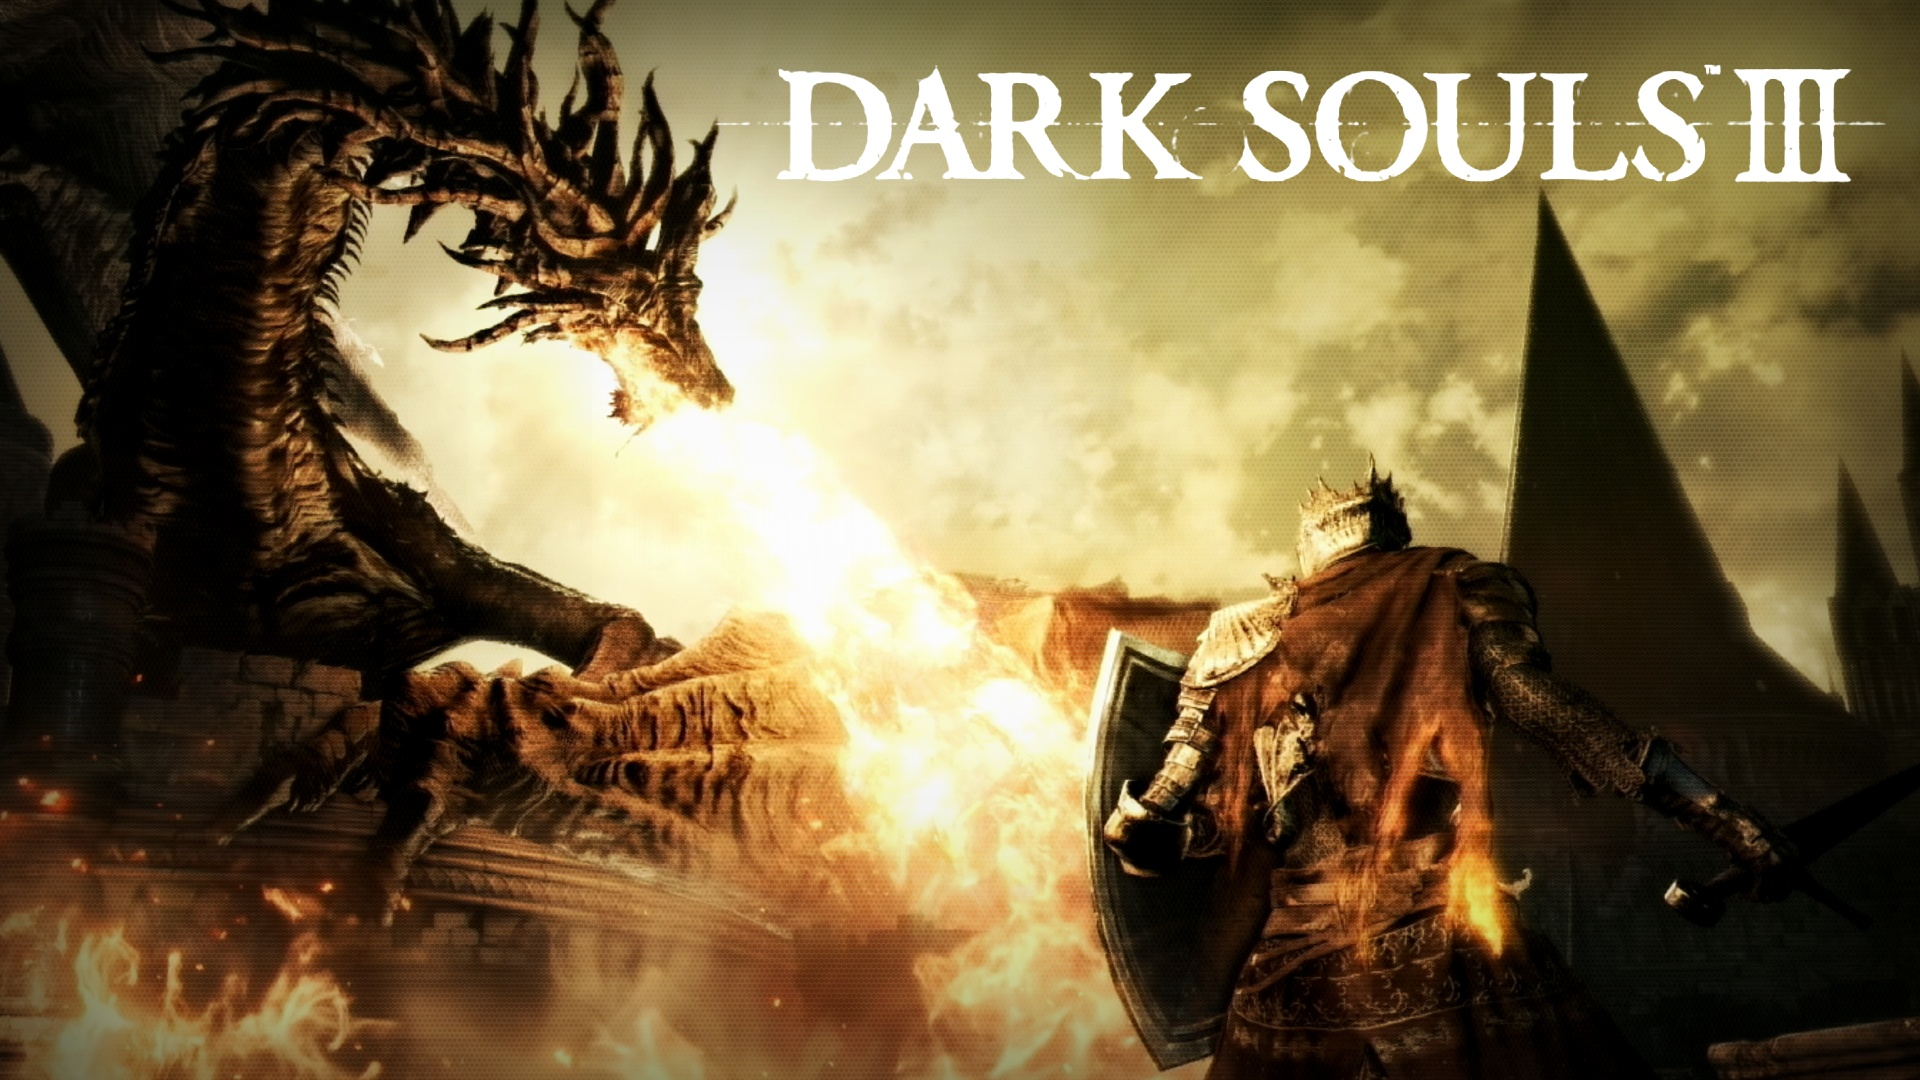 29 2015 By Stephen Comments Off on Dark Souls 3 HD Wallpaper 1920x1080